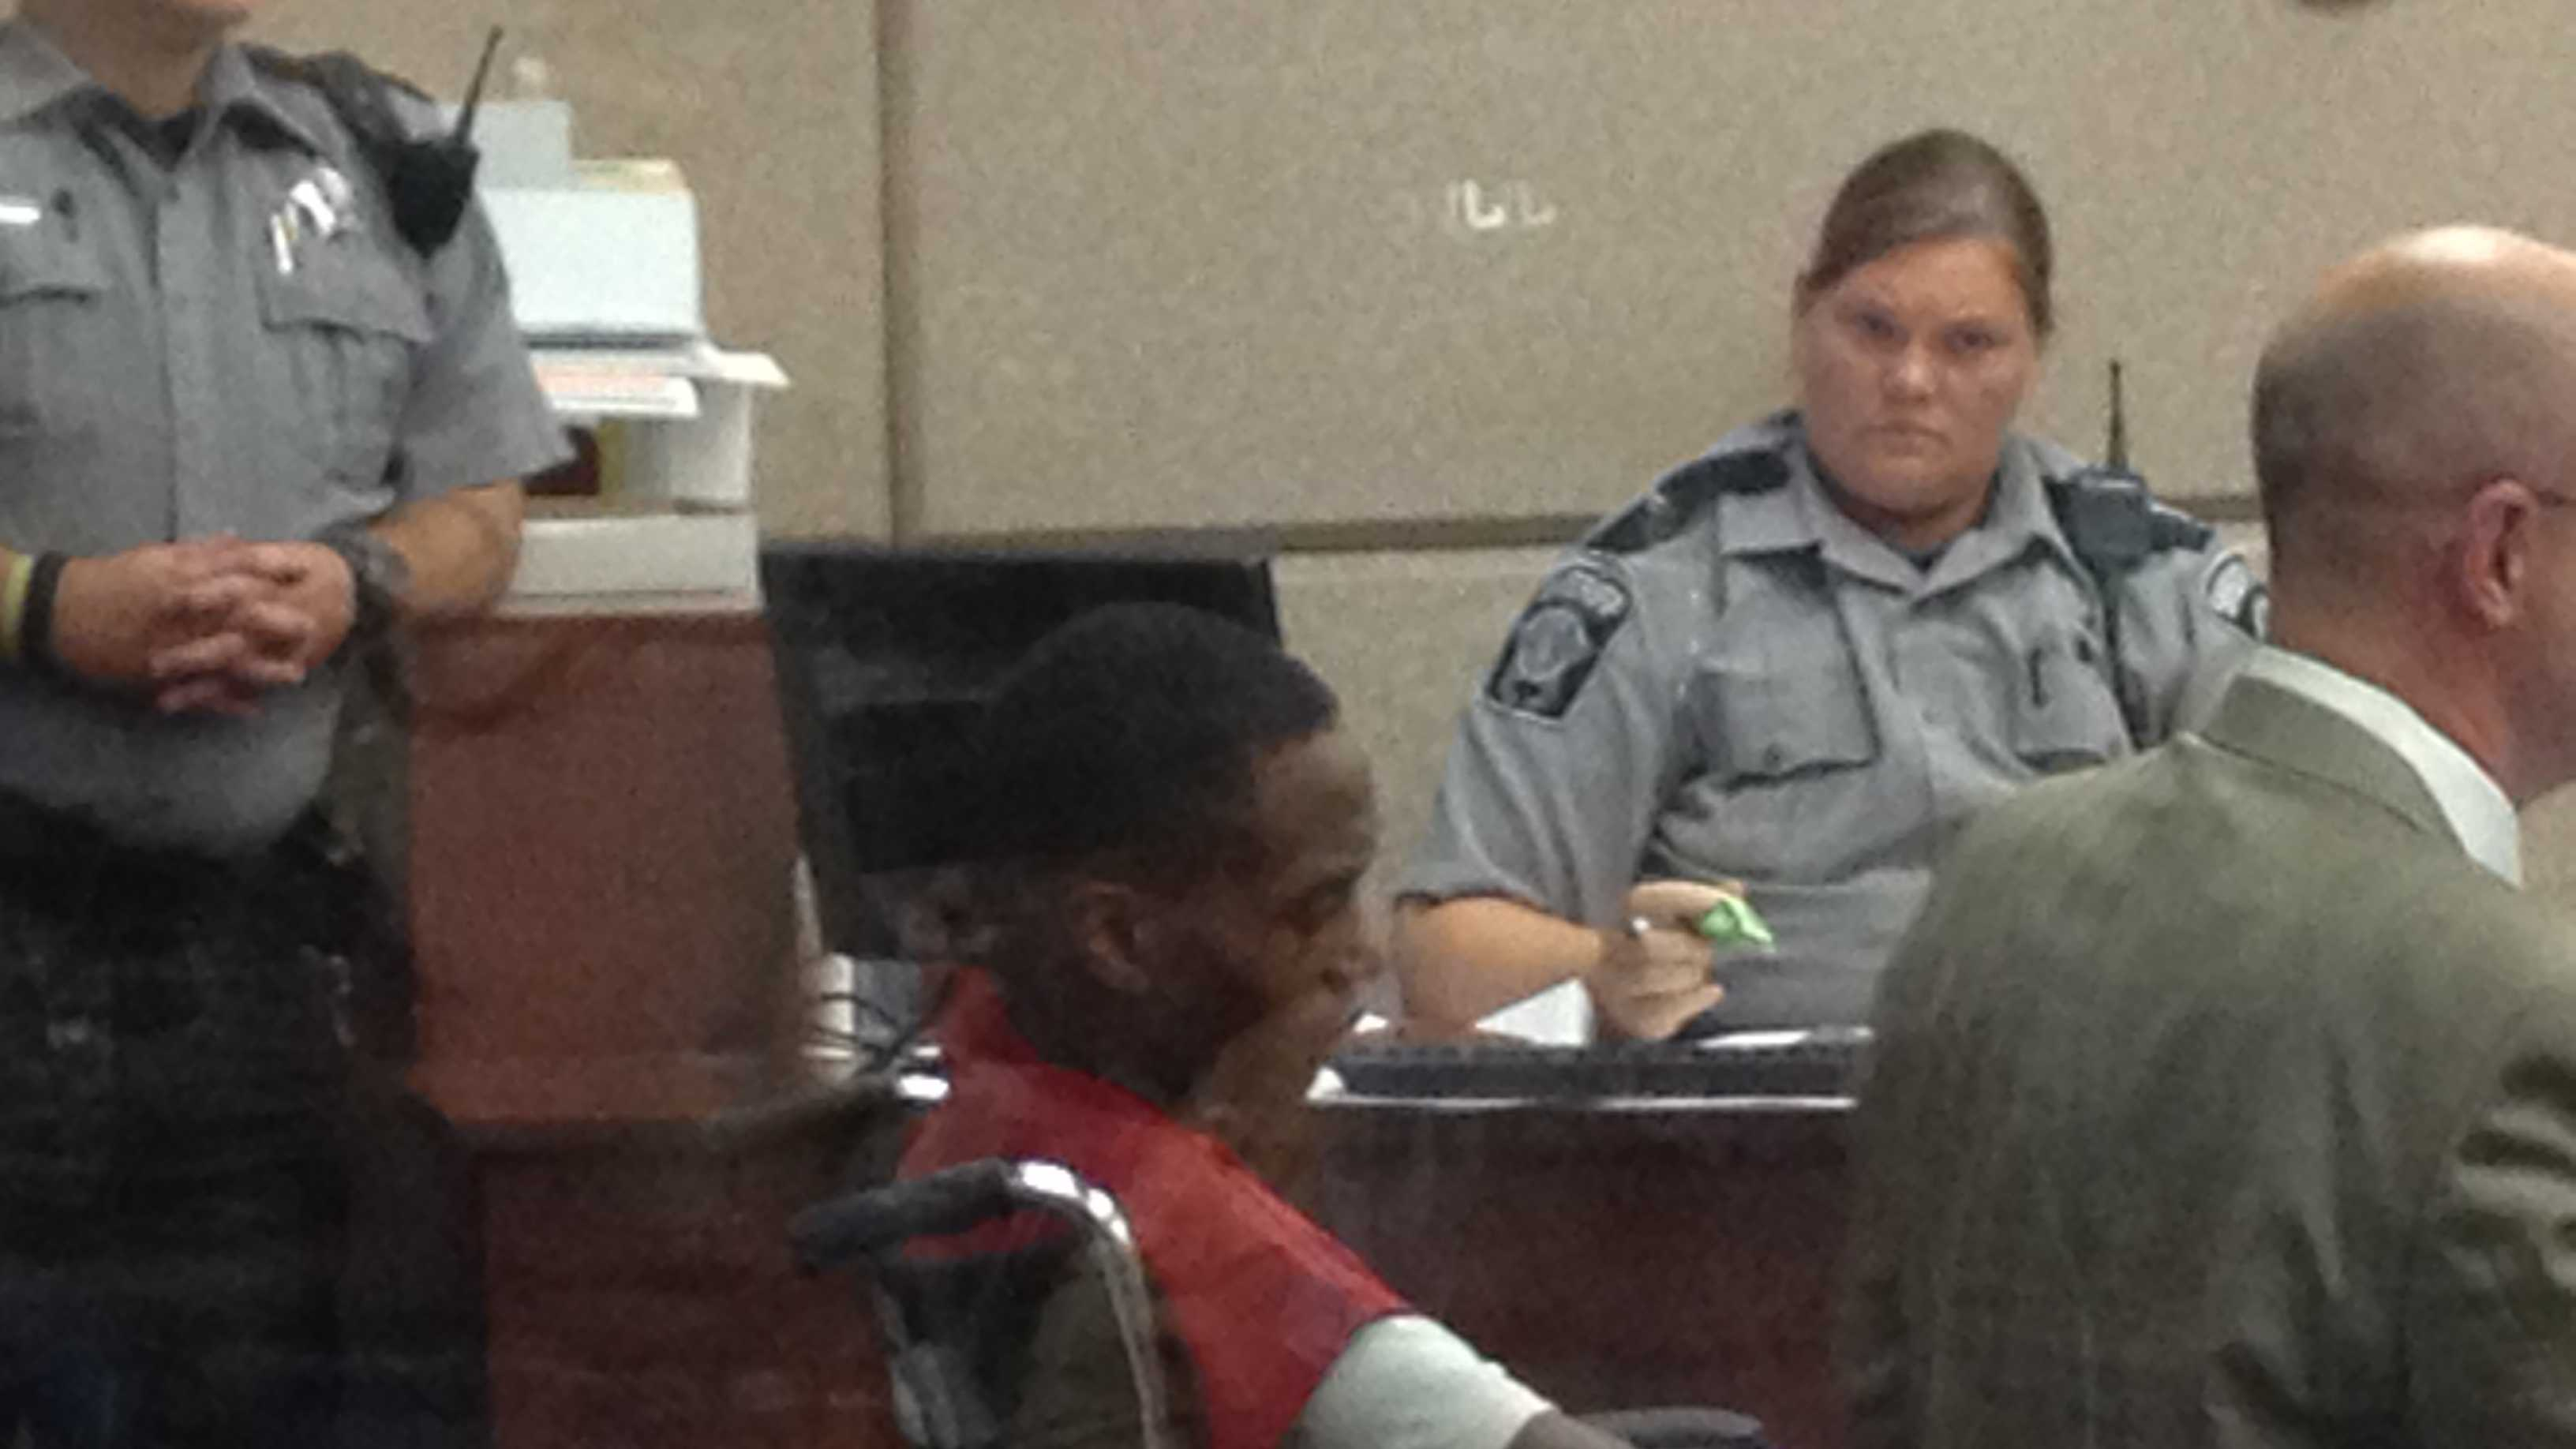 Tory Johnson in court